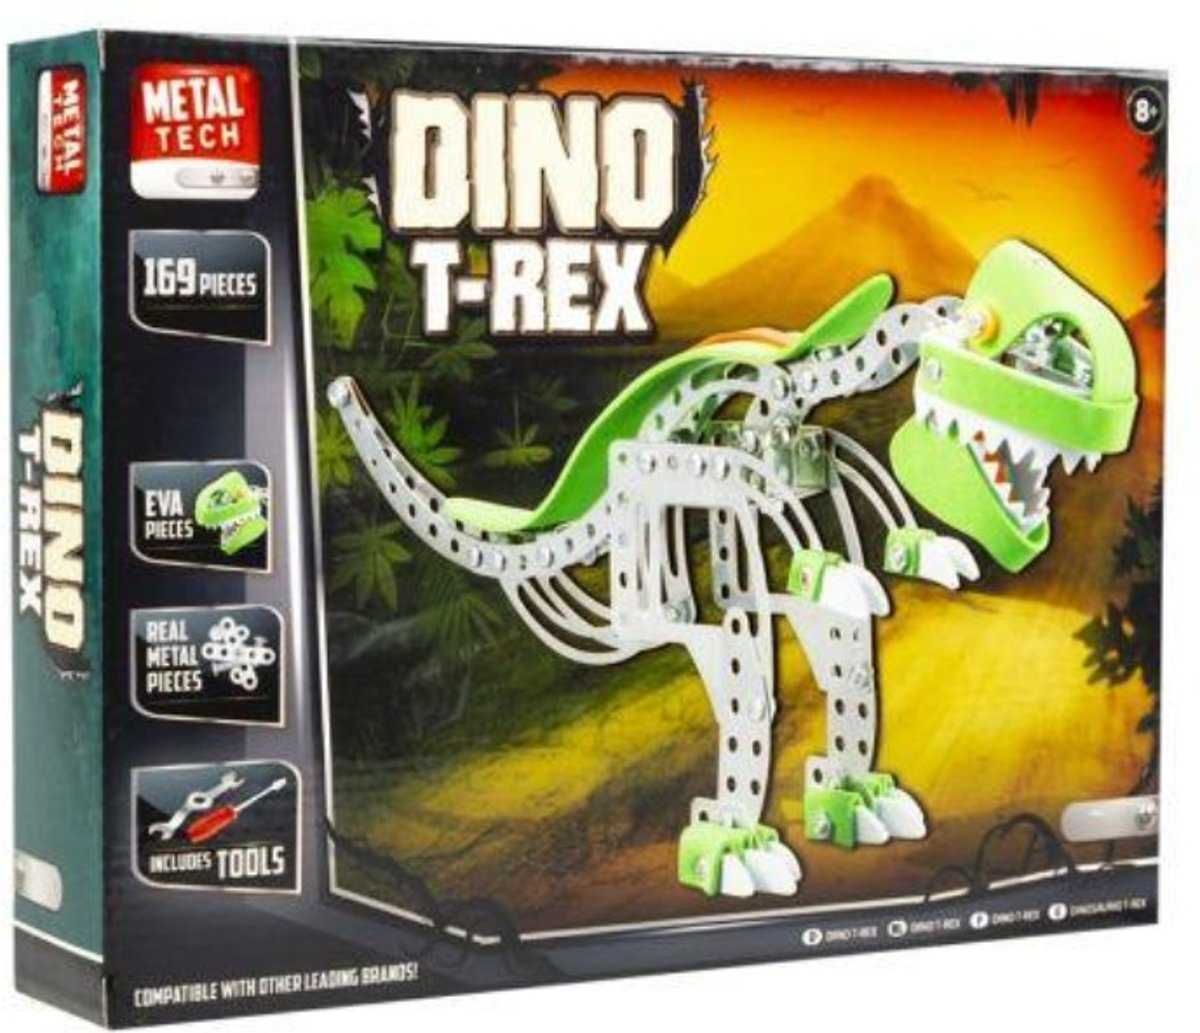 Dino T-Rex Metal tech